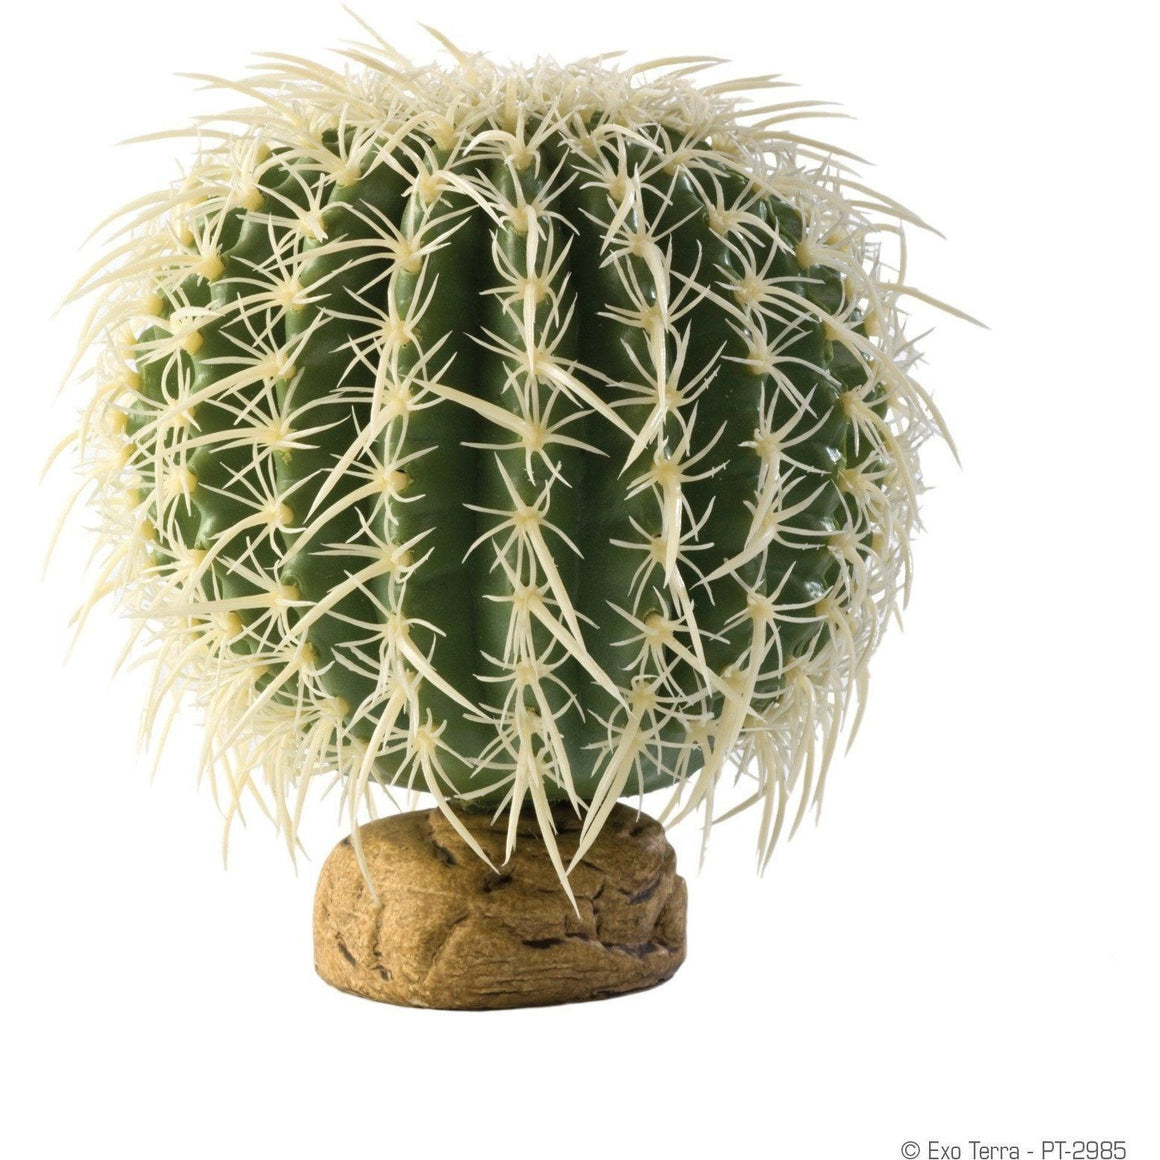 Exo Terra Desert Barrel Cactus Terrarium Plant Decorations Exo Terra Small - 1 Pack